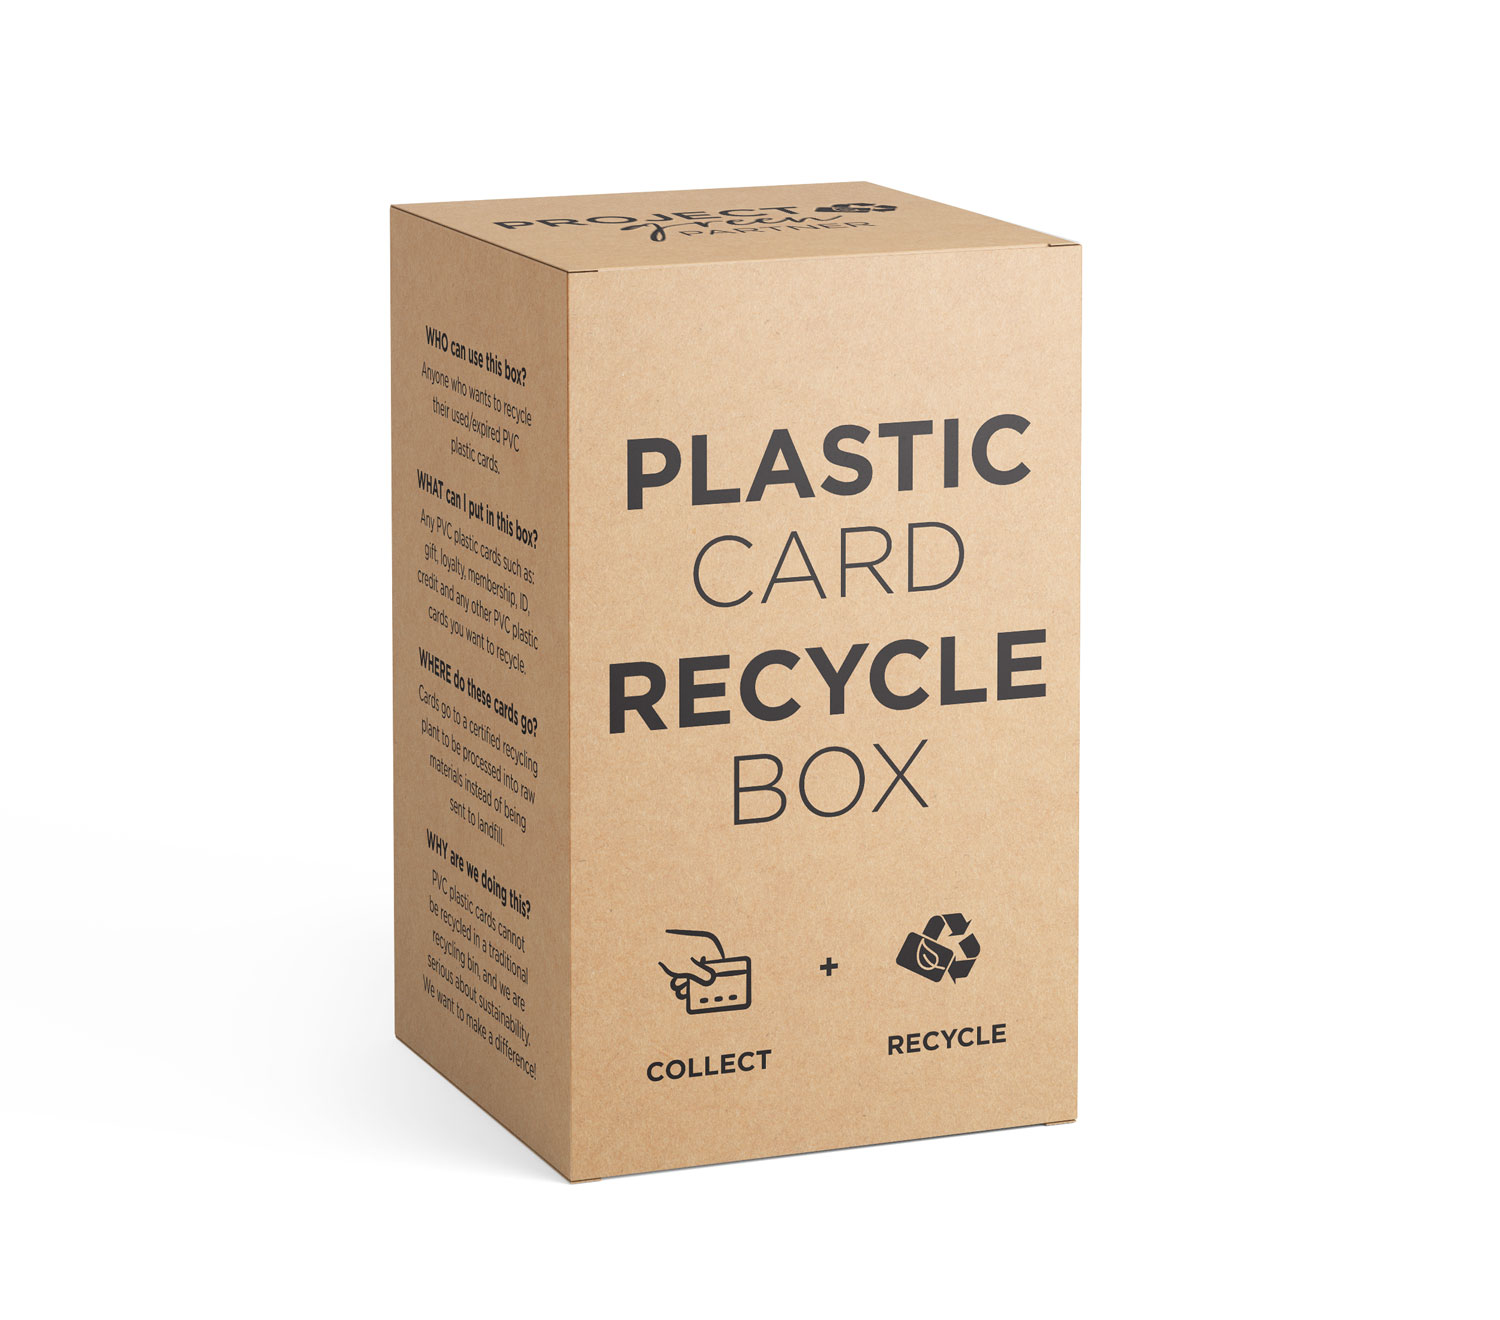 Plastic Card Recycle Box